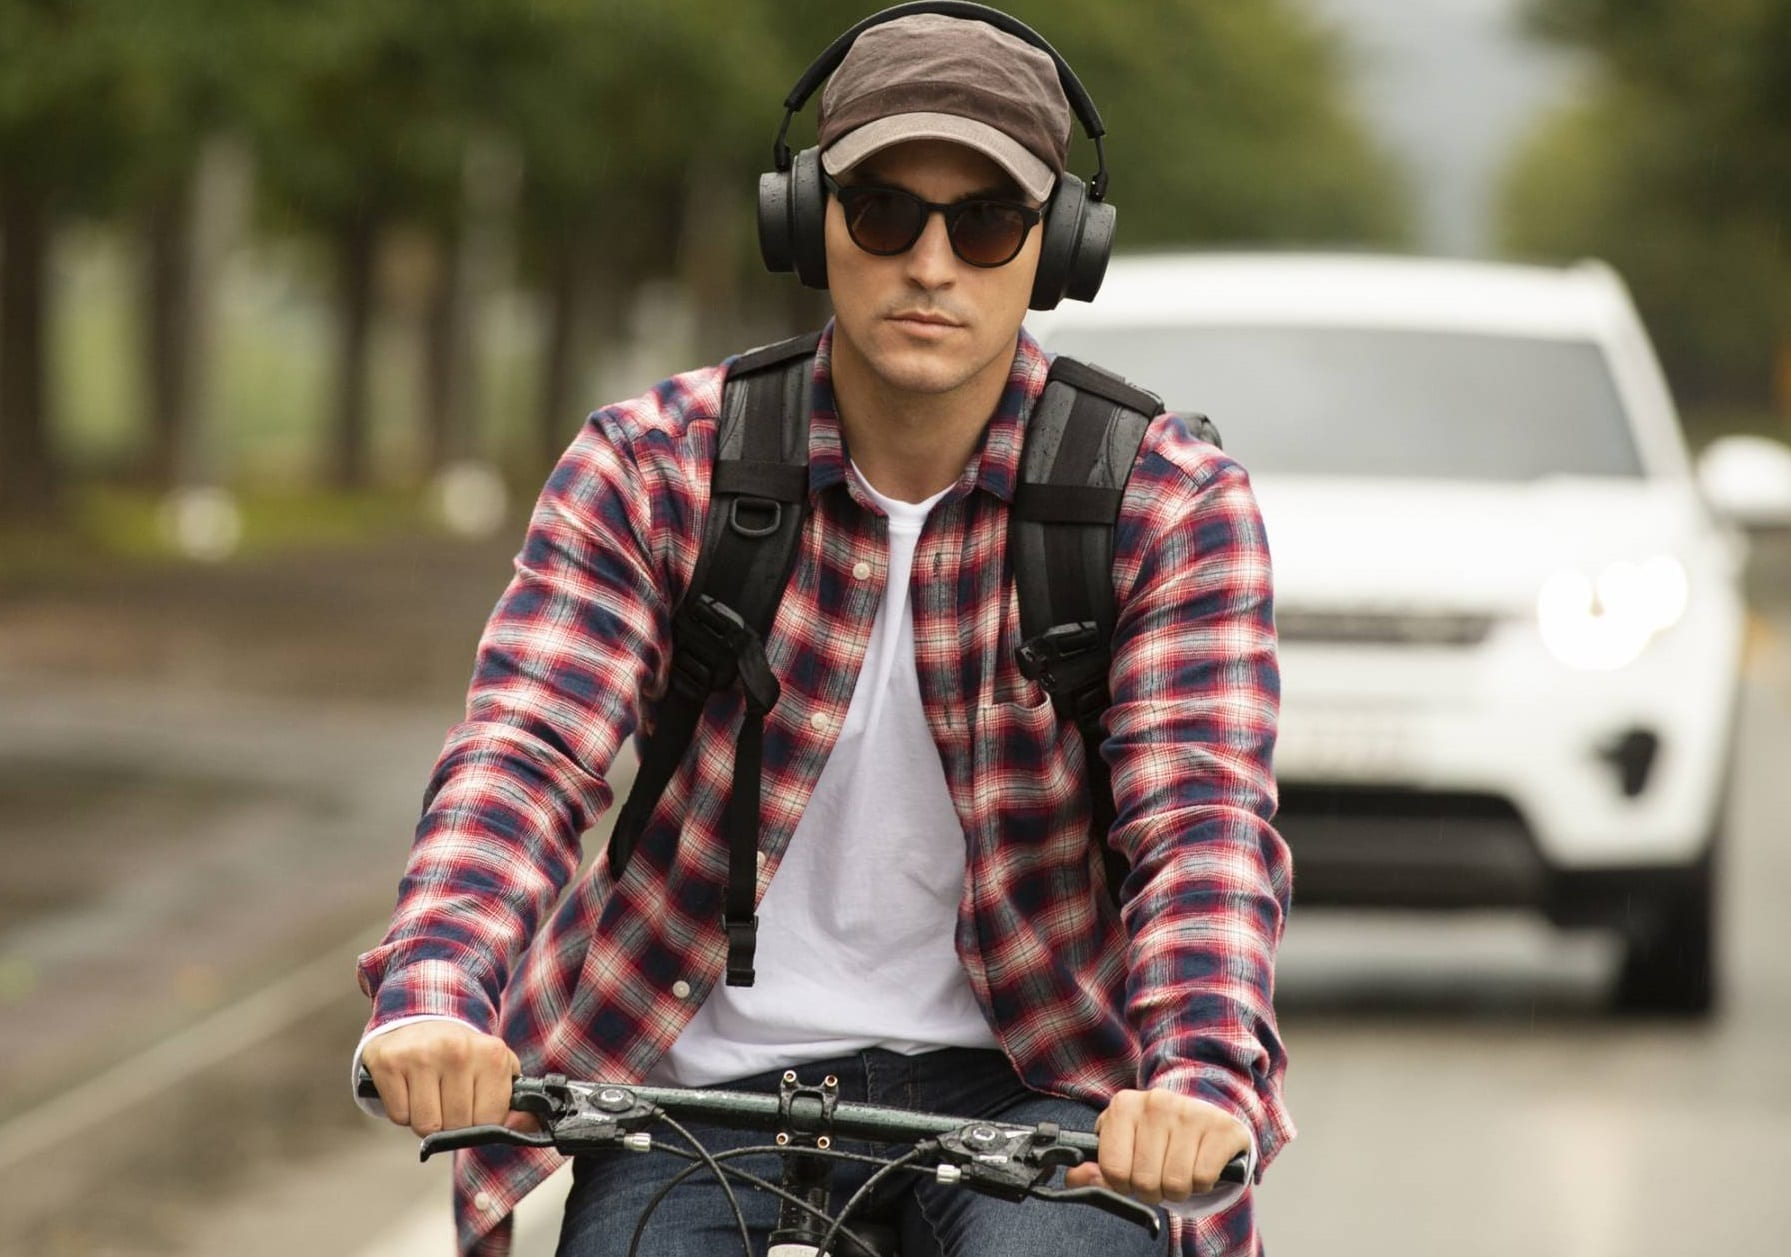 Smart Wireless Headphones Could Save Your Life